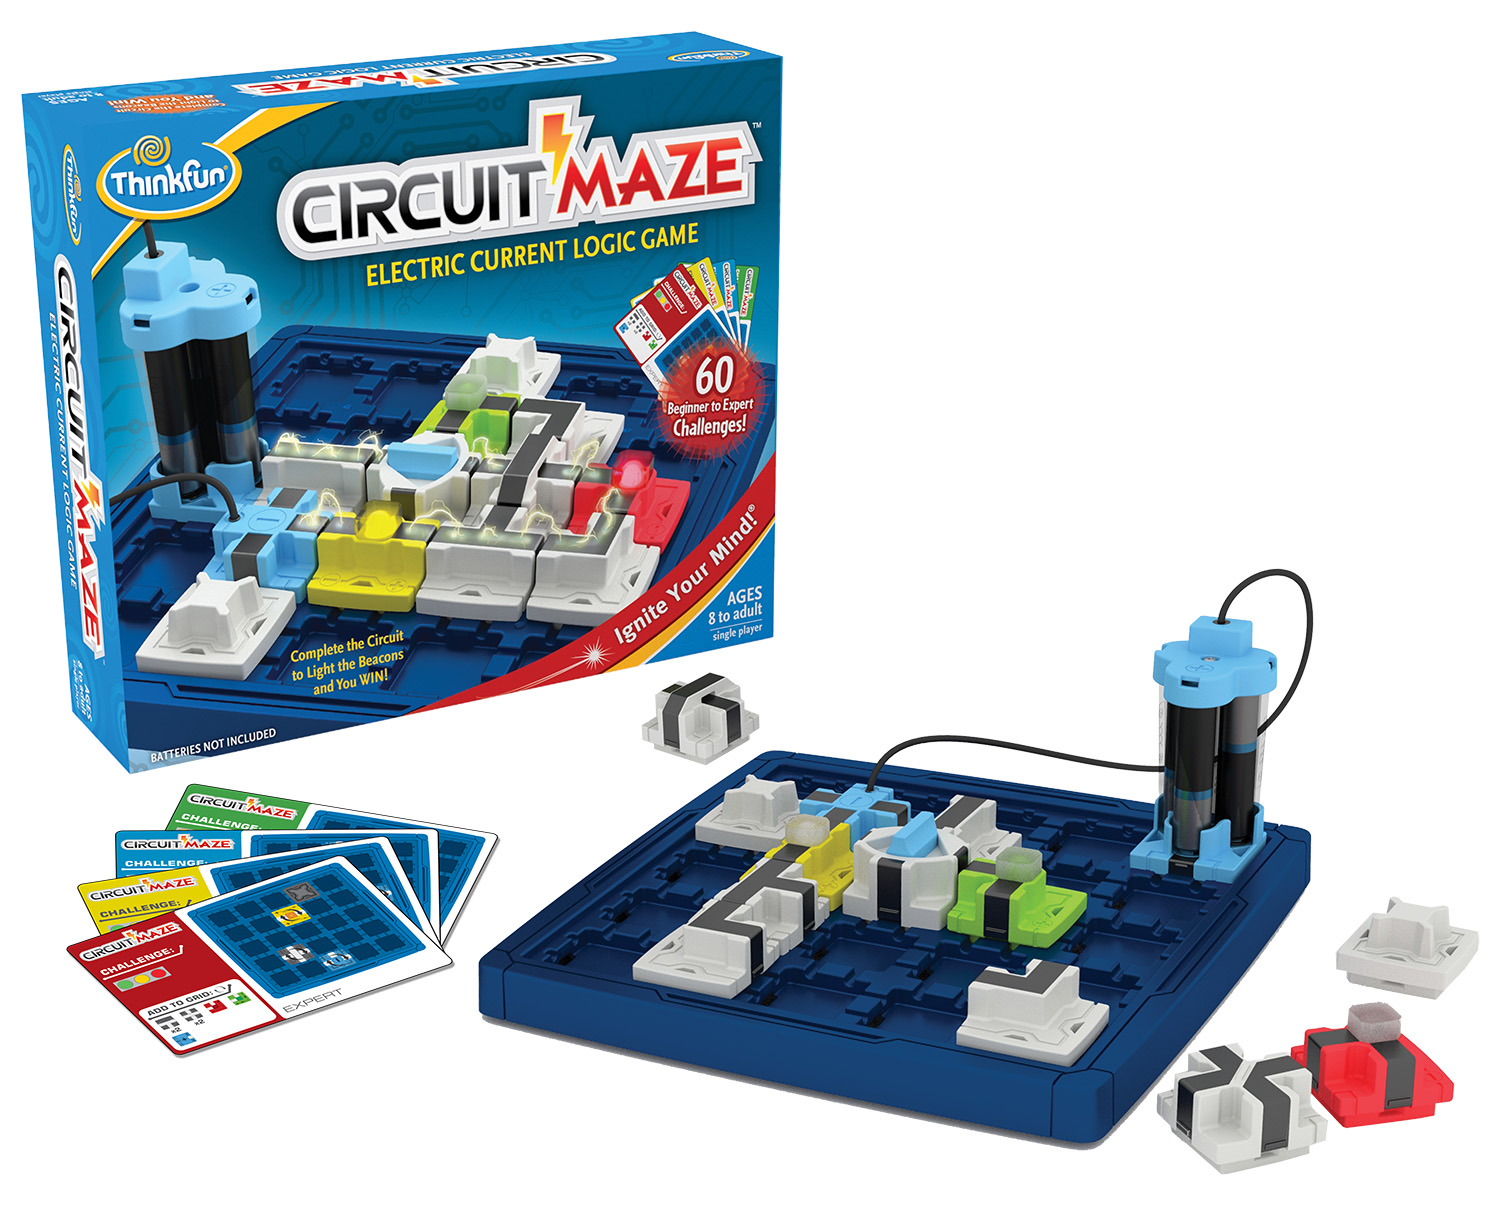 Excellent Electric Circuit Game Board Basic Electronics Wiring Diagram Wiring Digital Resources Timewpwclawcorpcom